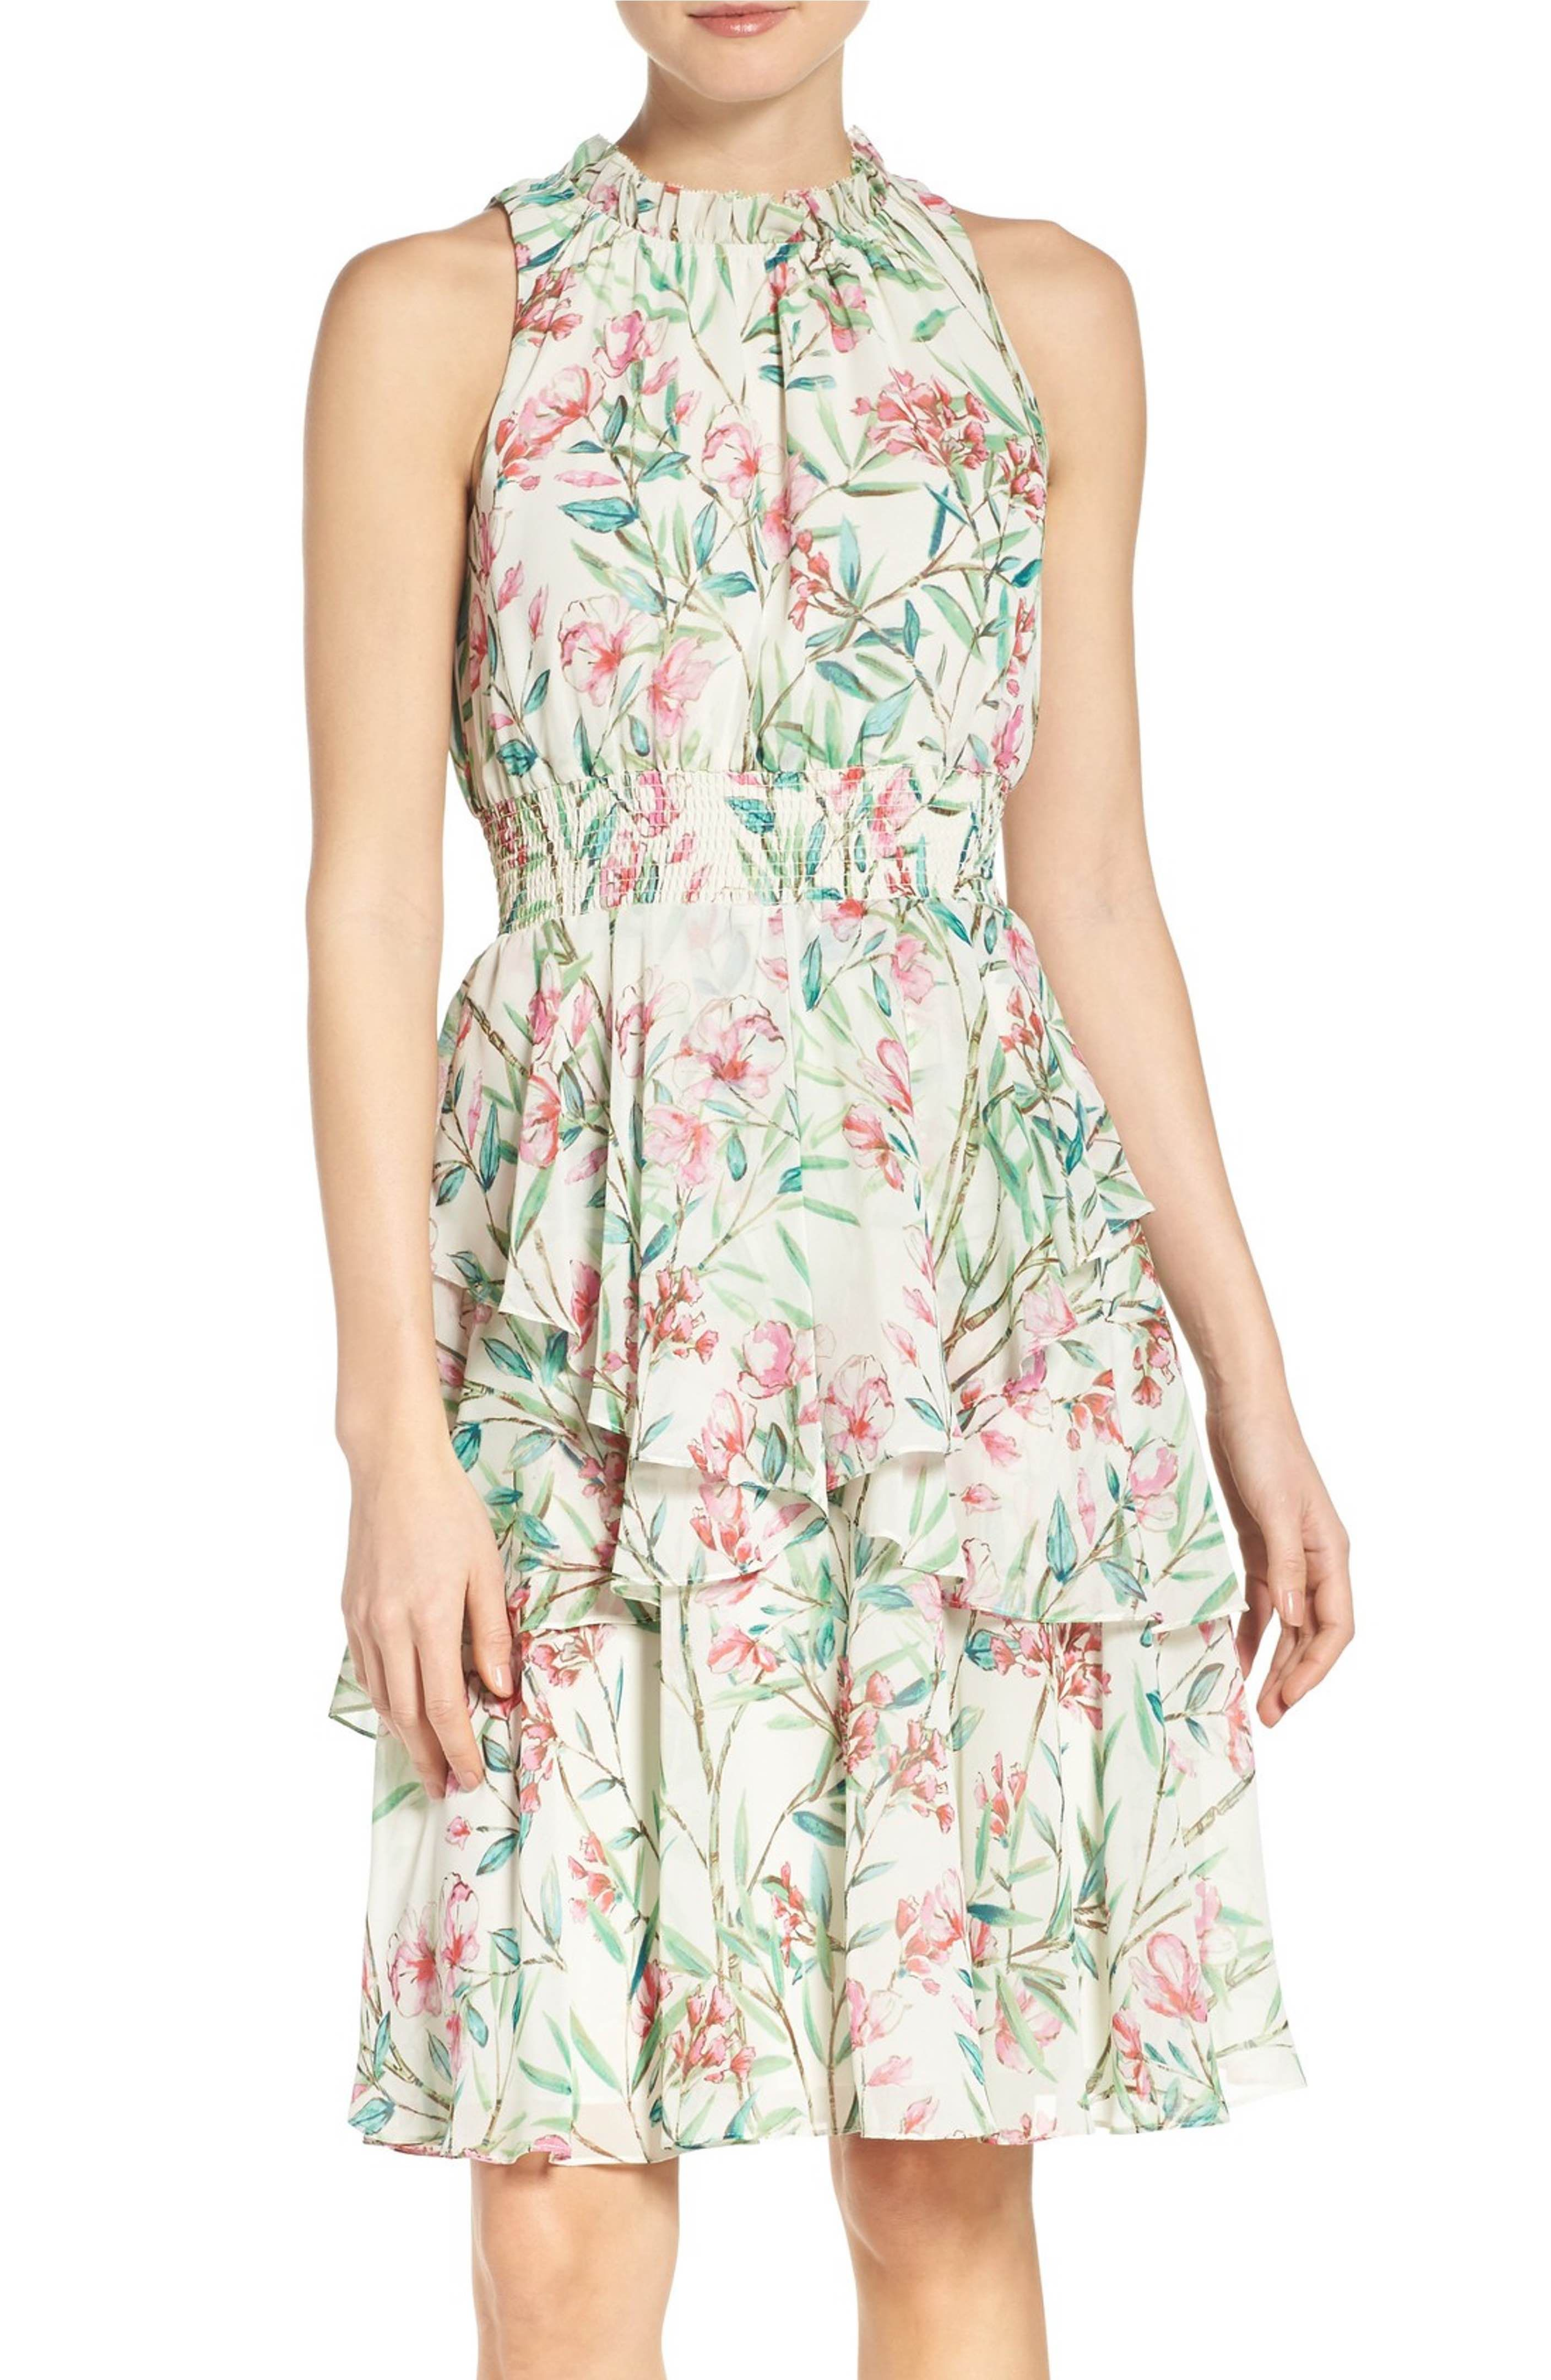 Main image eliza j chiffon fit u flare dress dressing up